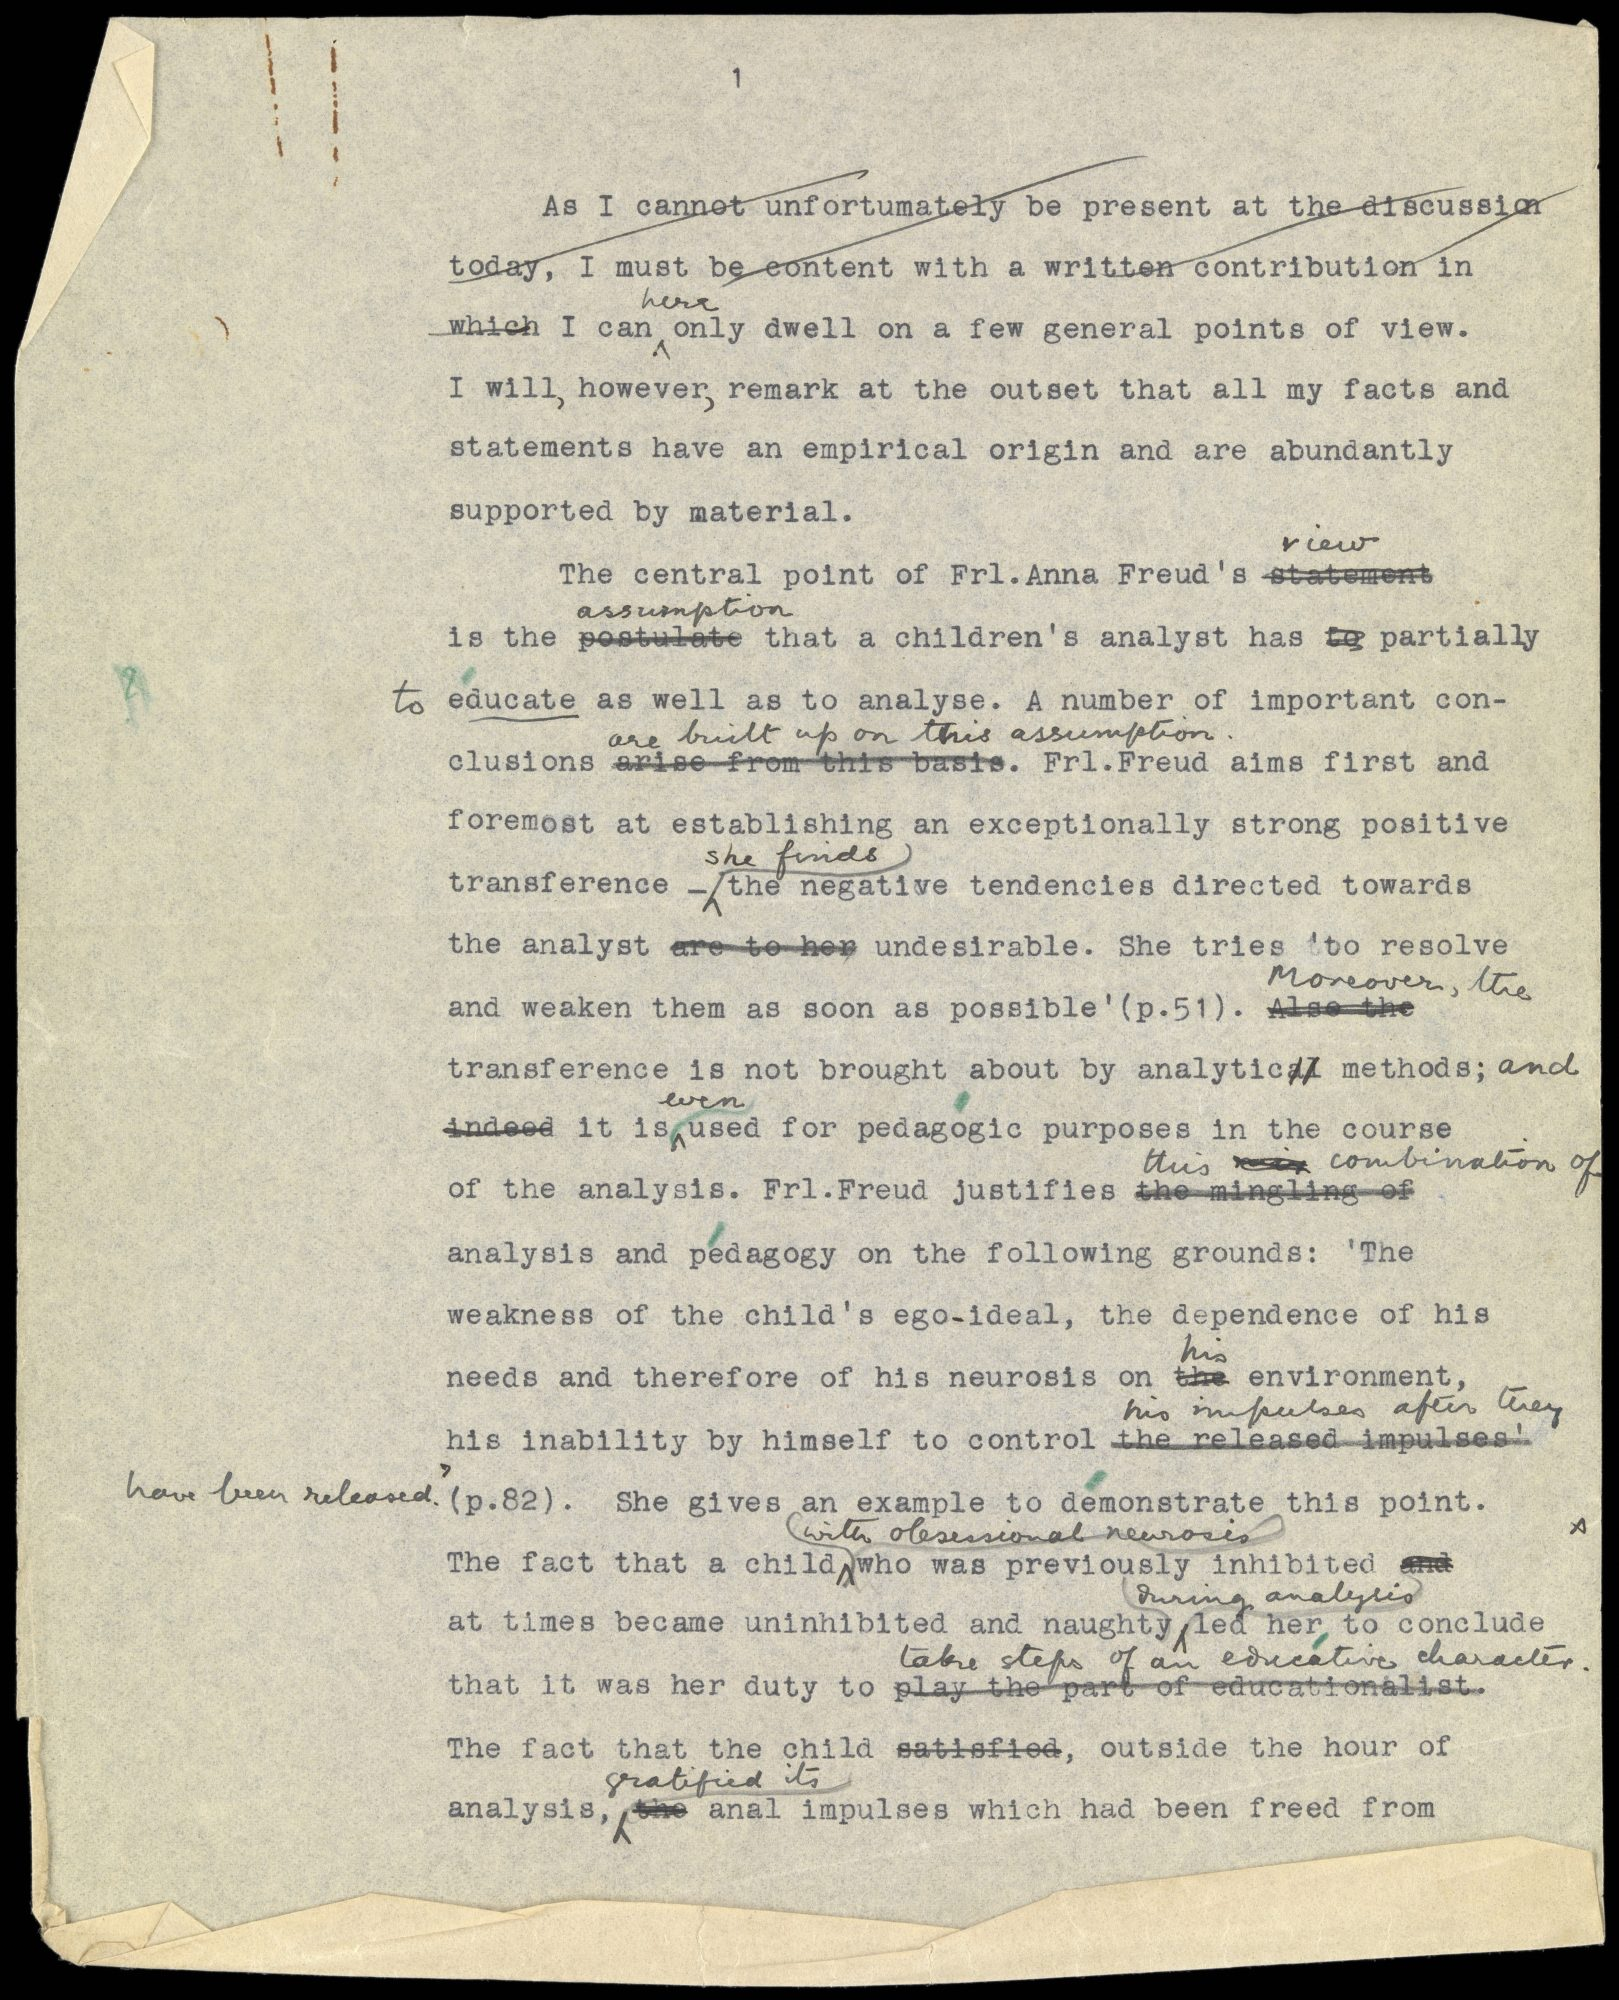 Copy of a typed and hand-annotated manuscript page - the first page of a draft critique of Anna Freud's approach to child analysis by Klein (c.1927)